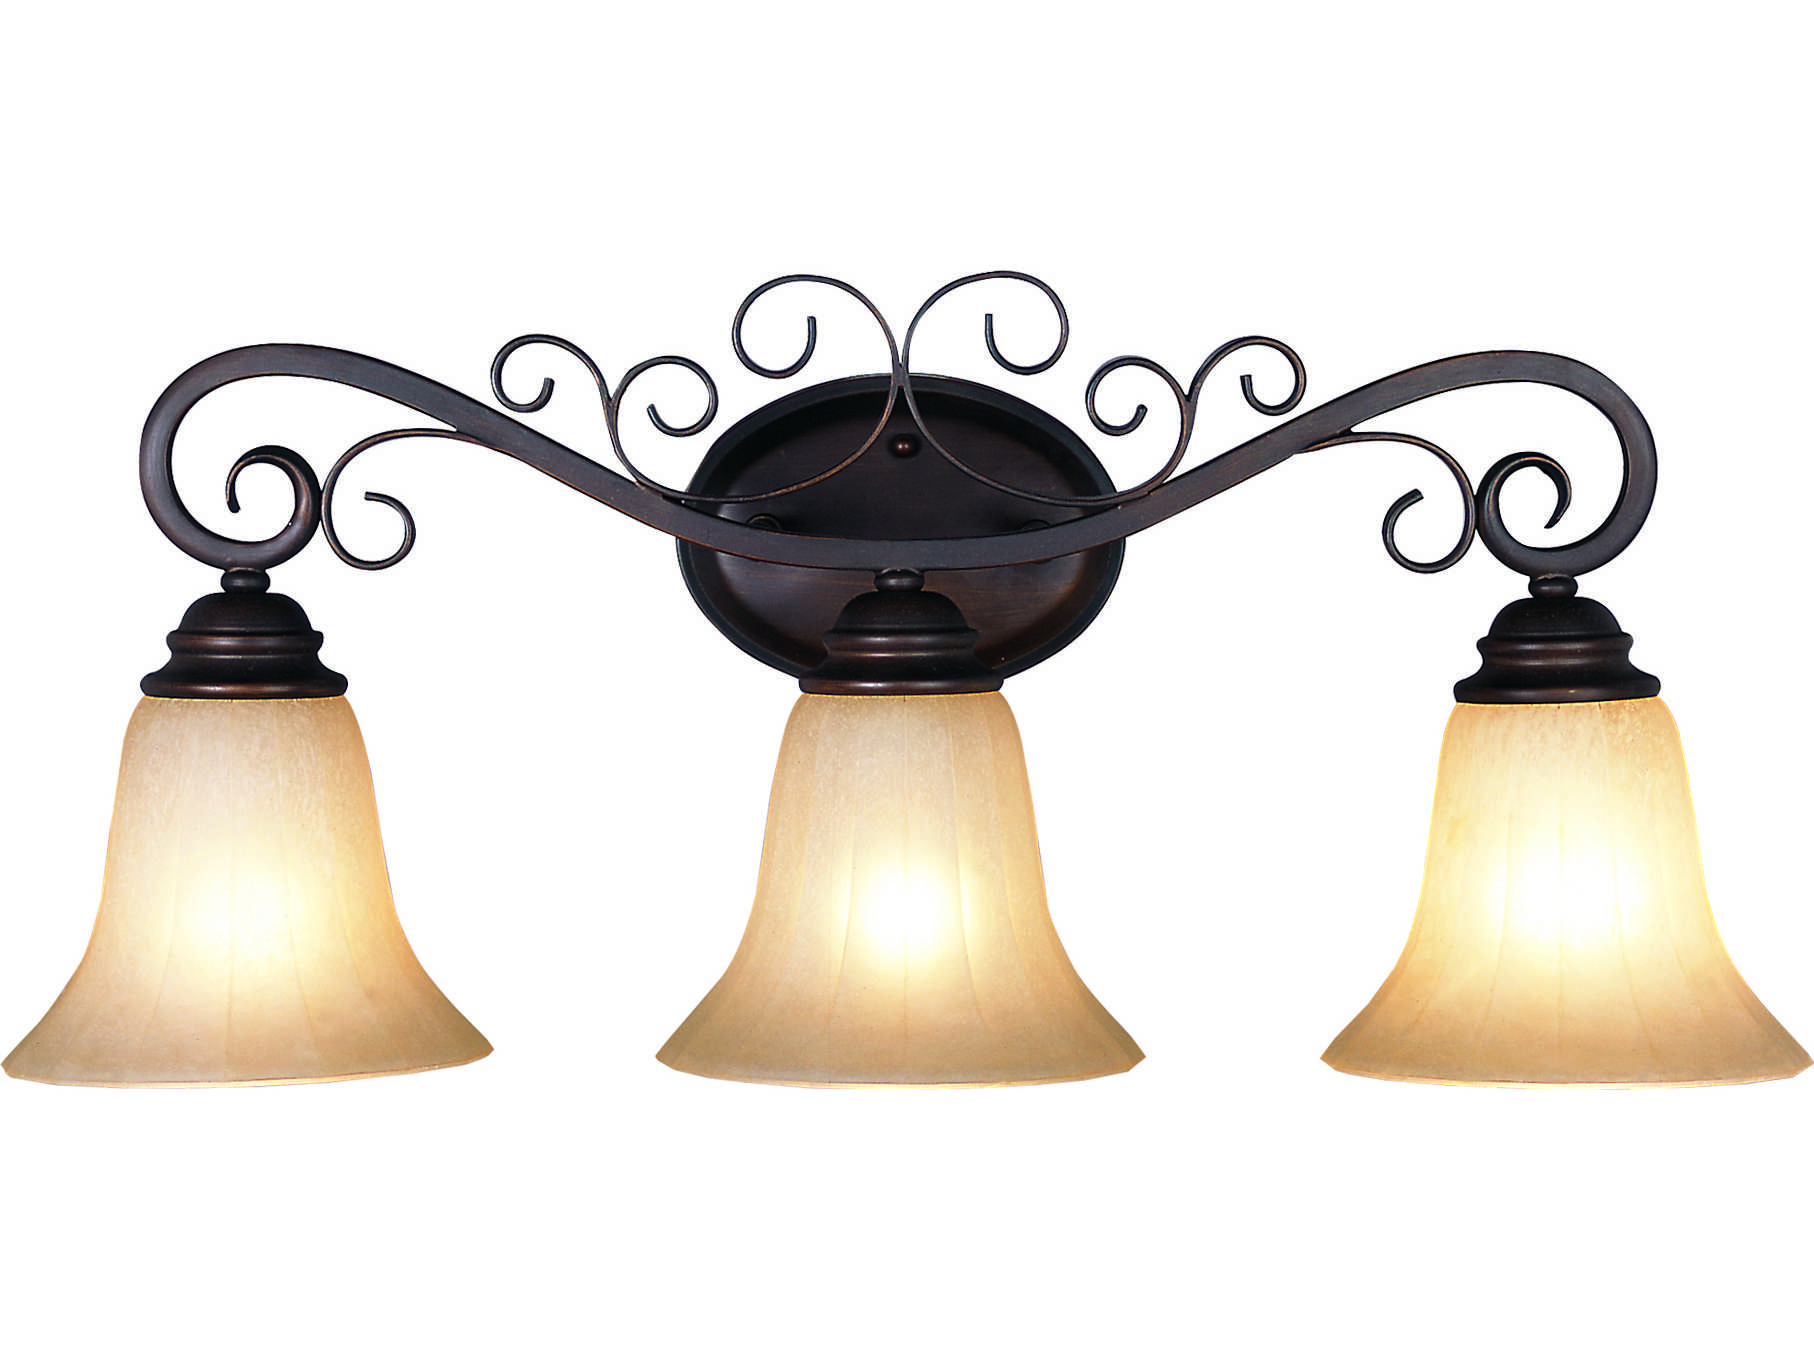 Trans Globe Lighting French Country Oil Rubbed Bronze Three-Light Vanity Light 21043-ROB